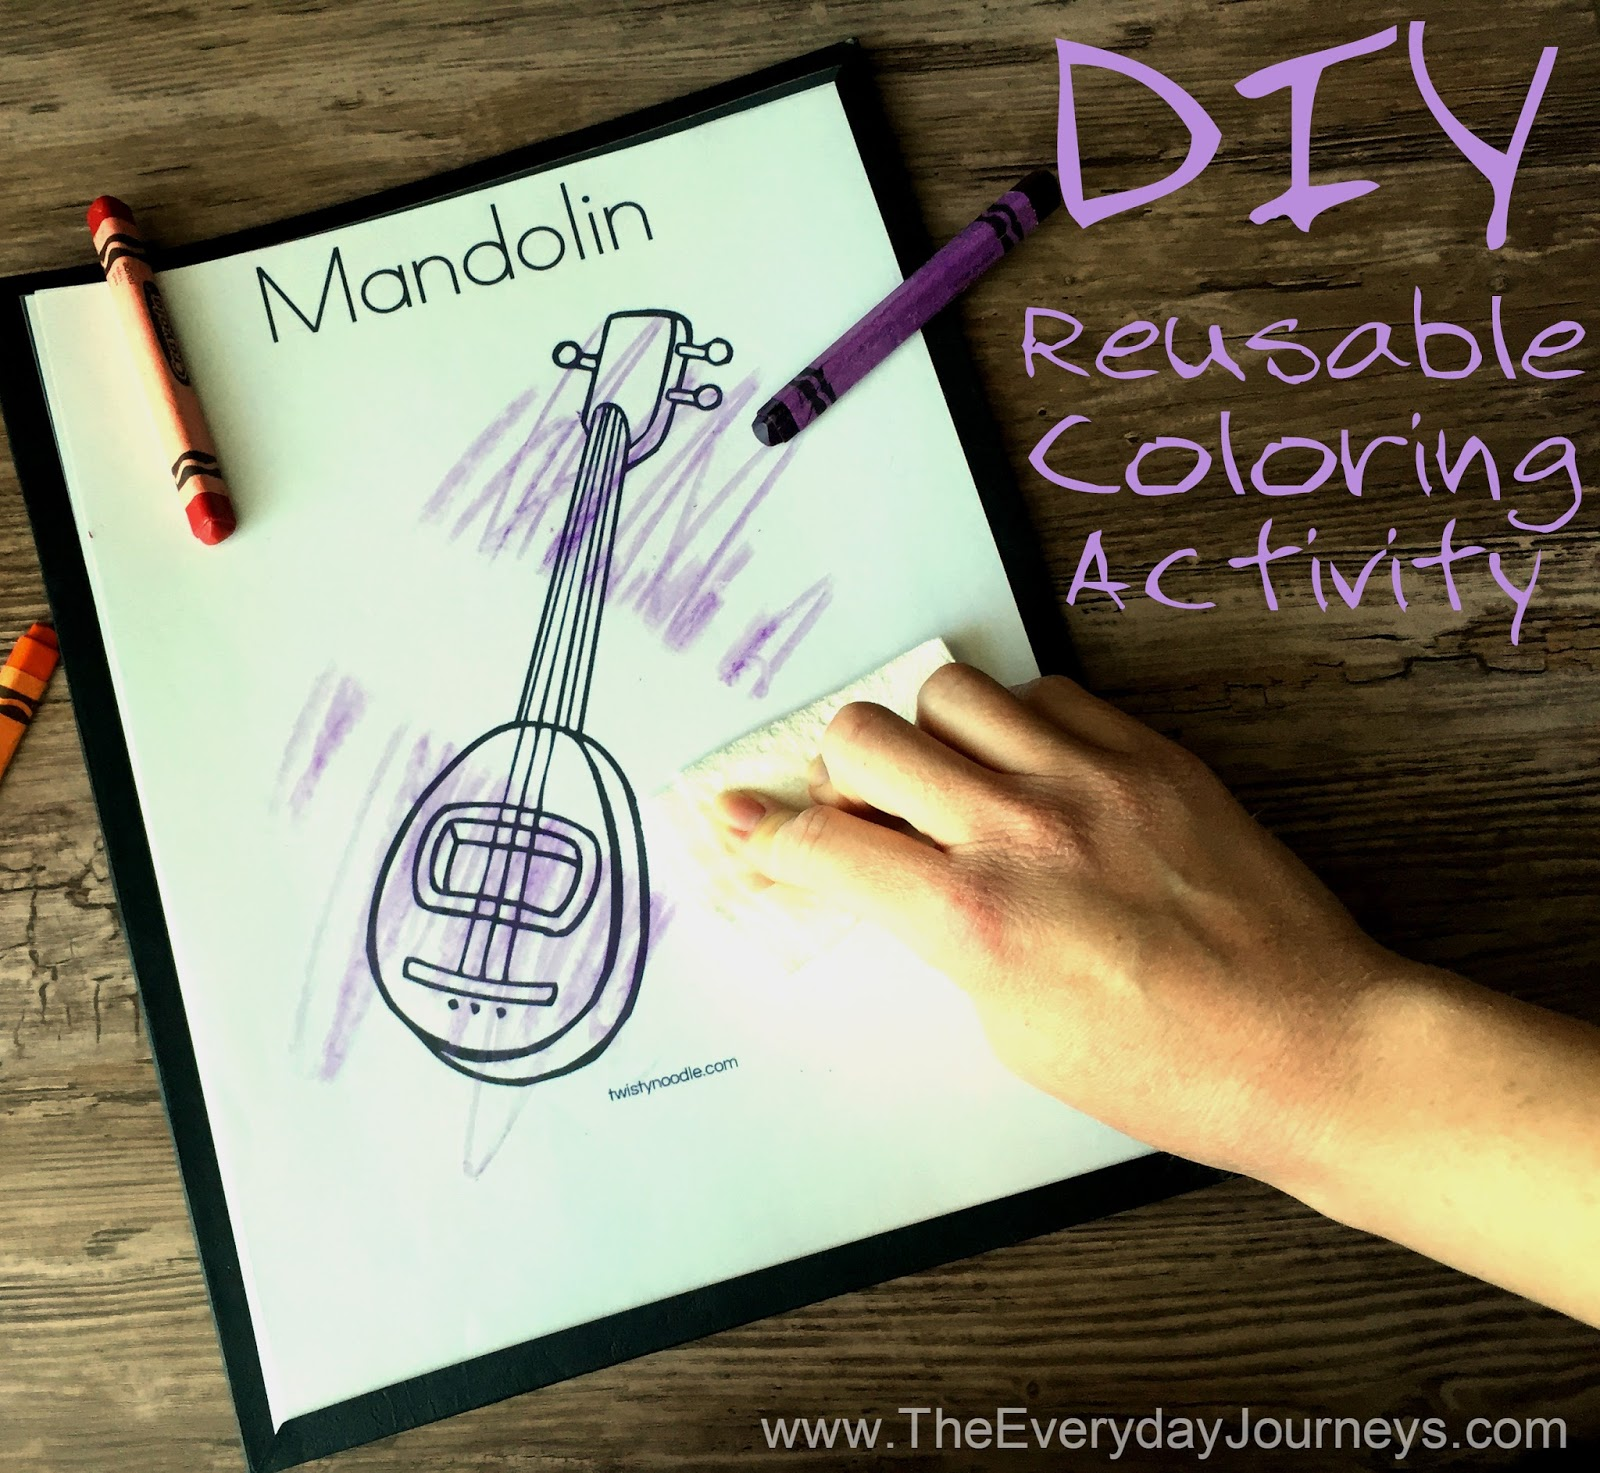 the everyday journeys travel hack diy reusable coloring activity. Black Bedroom Furniture Sets. Home Design Ideas